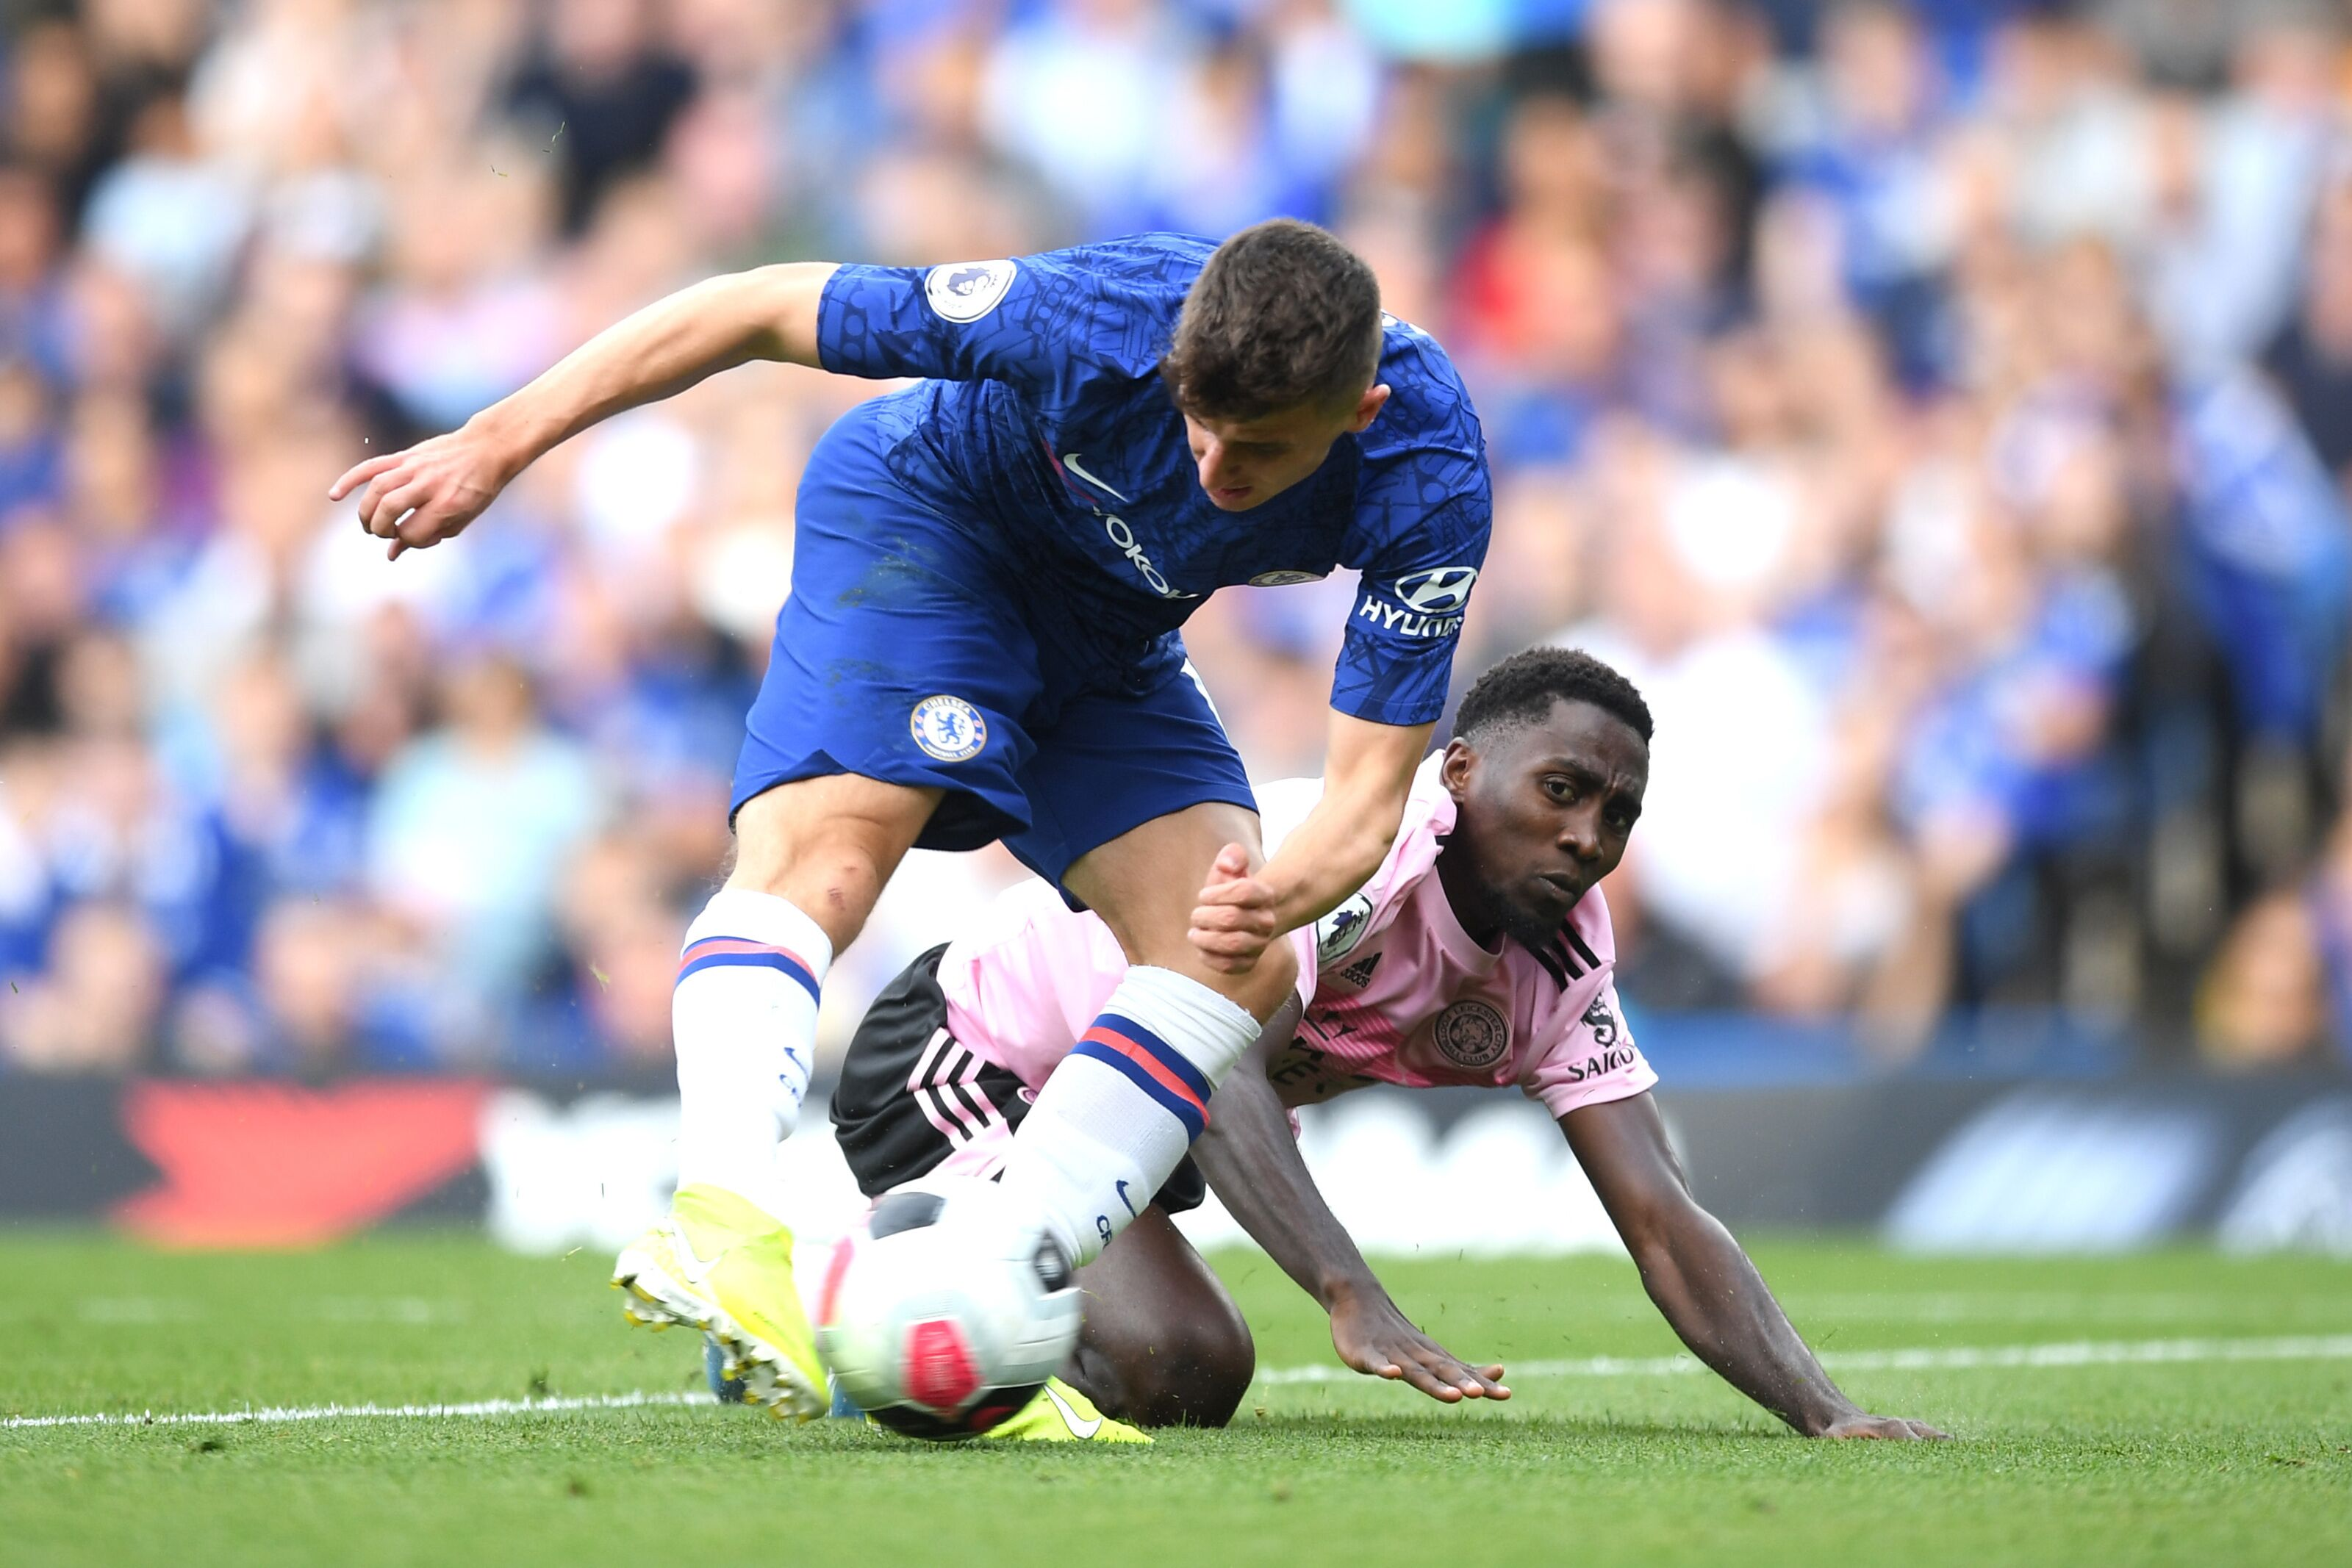 Mason Mount is the attack-minded midfielder Chelsea were missing